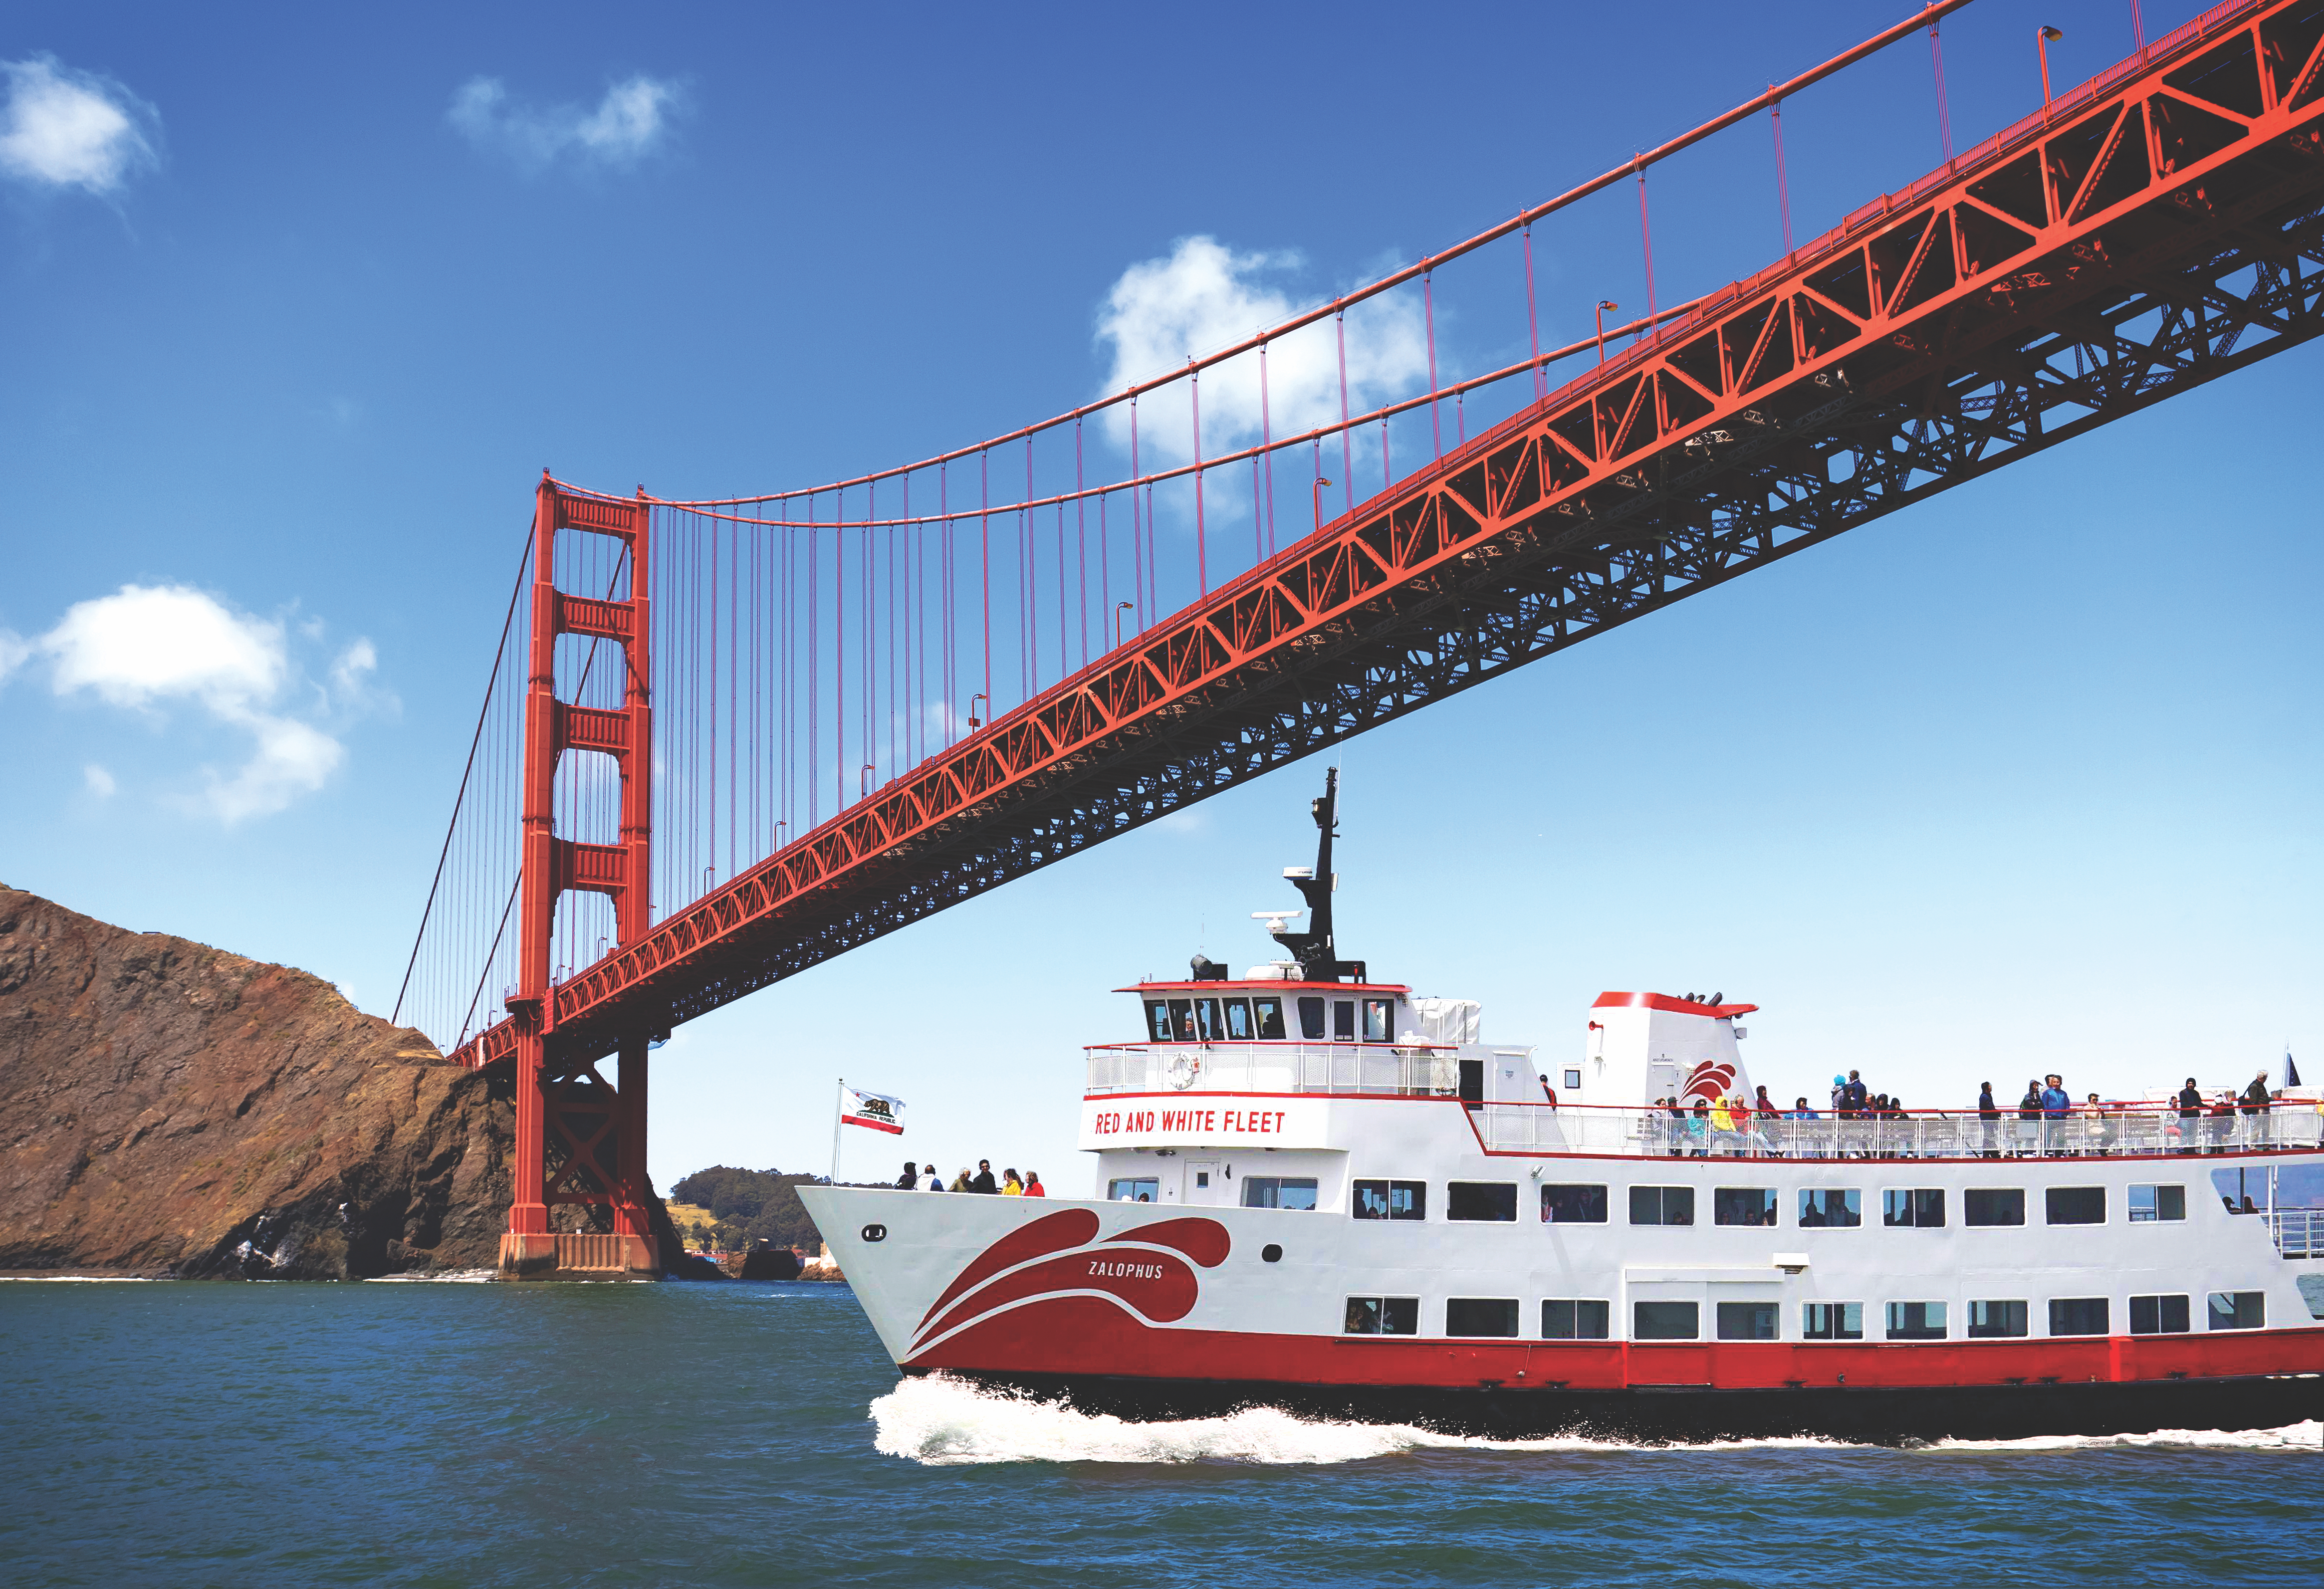 Red and White ferry traveling under the Golden Gate Bridge